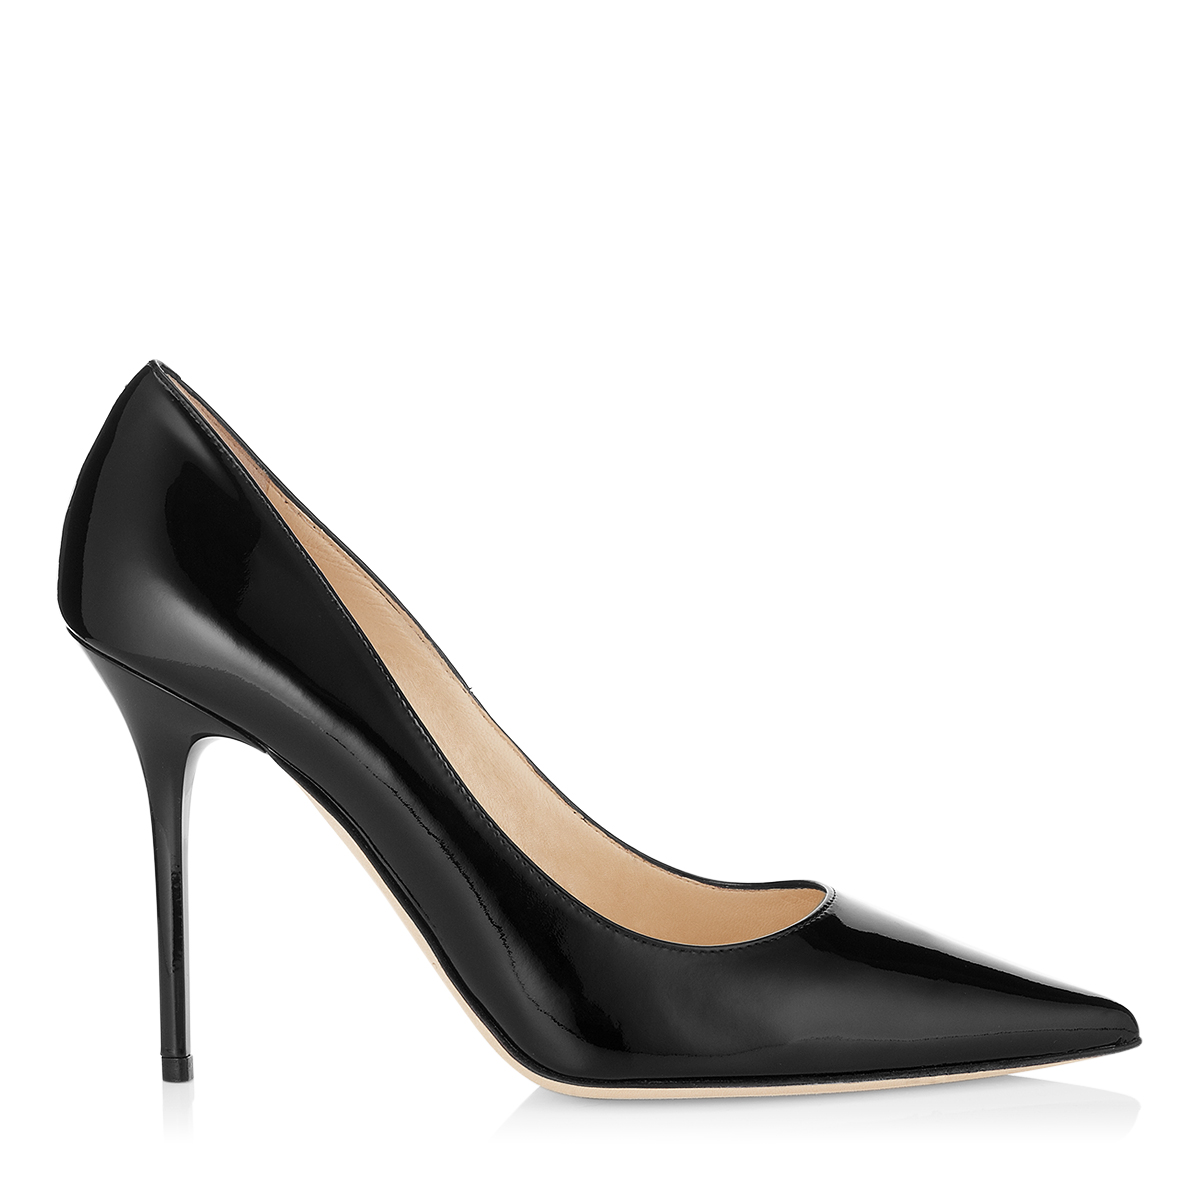 Black Suede Designer Pumps | Pointed Toe Shoes | Agnes | JIMMY CHOO Pumps